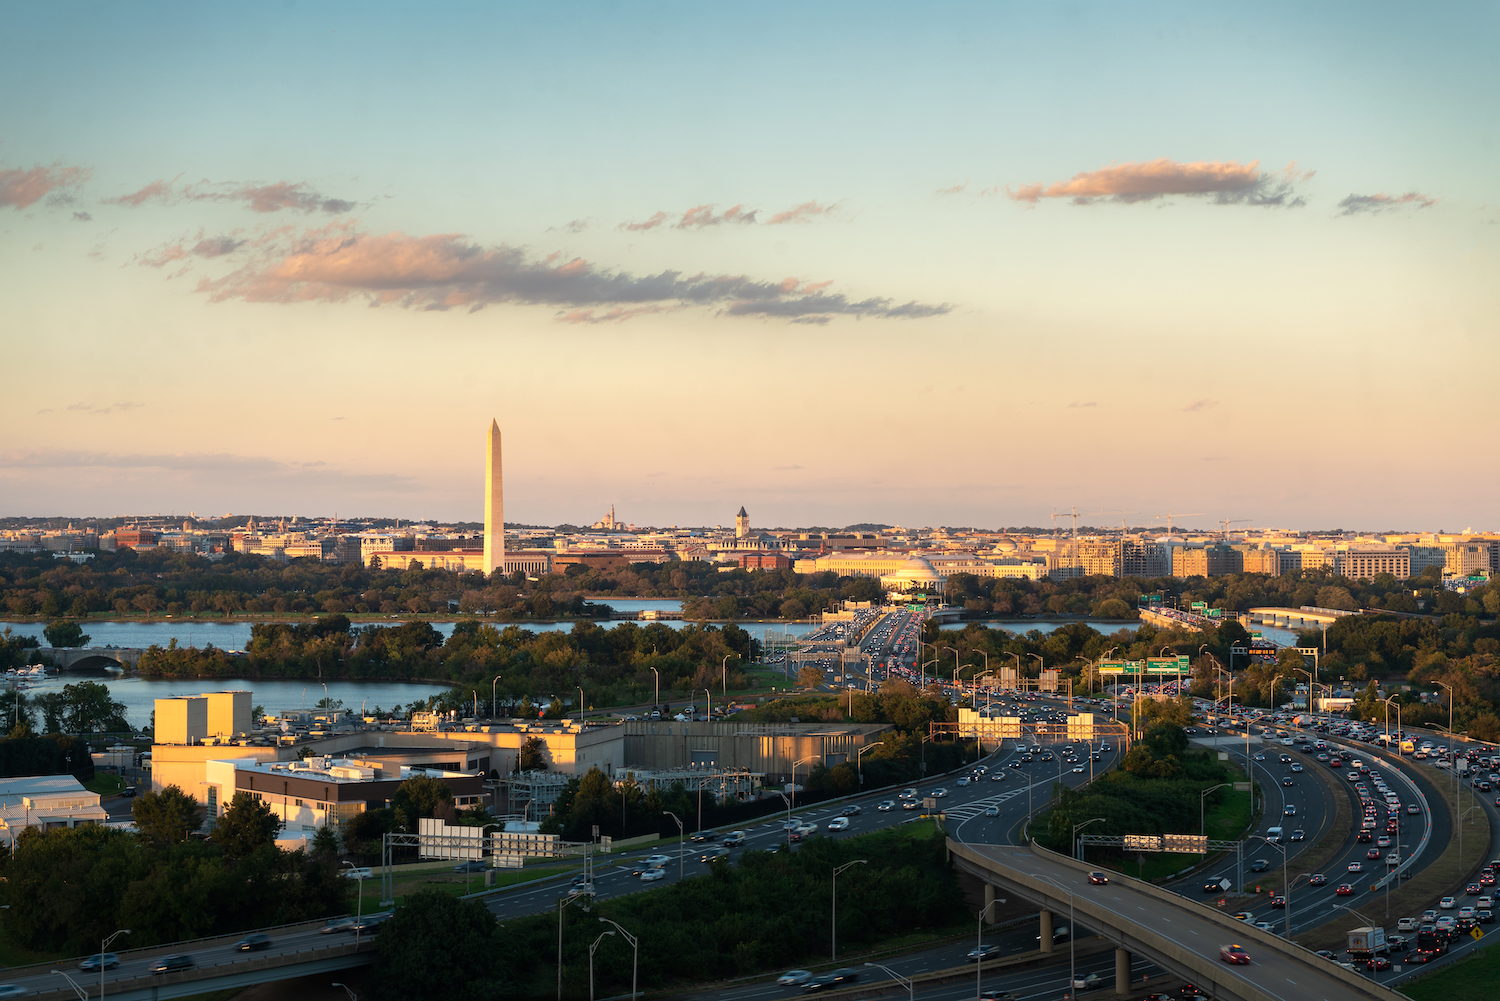 Highways, monuments, and a river are seen at sunset. A tall obelisk is in the background.